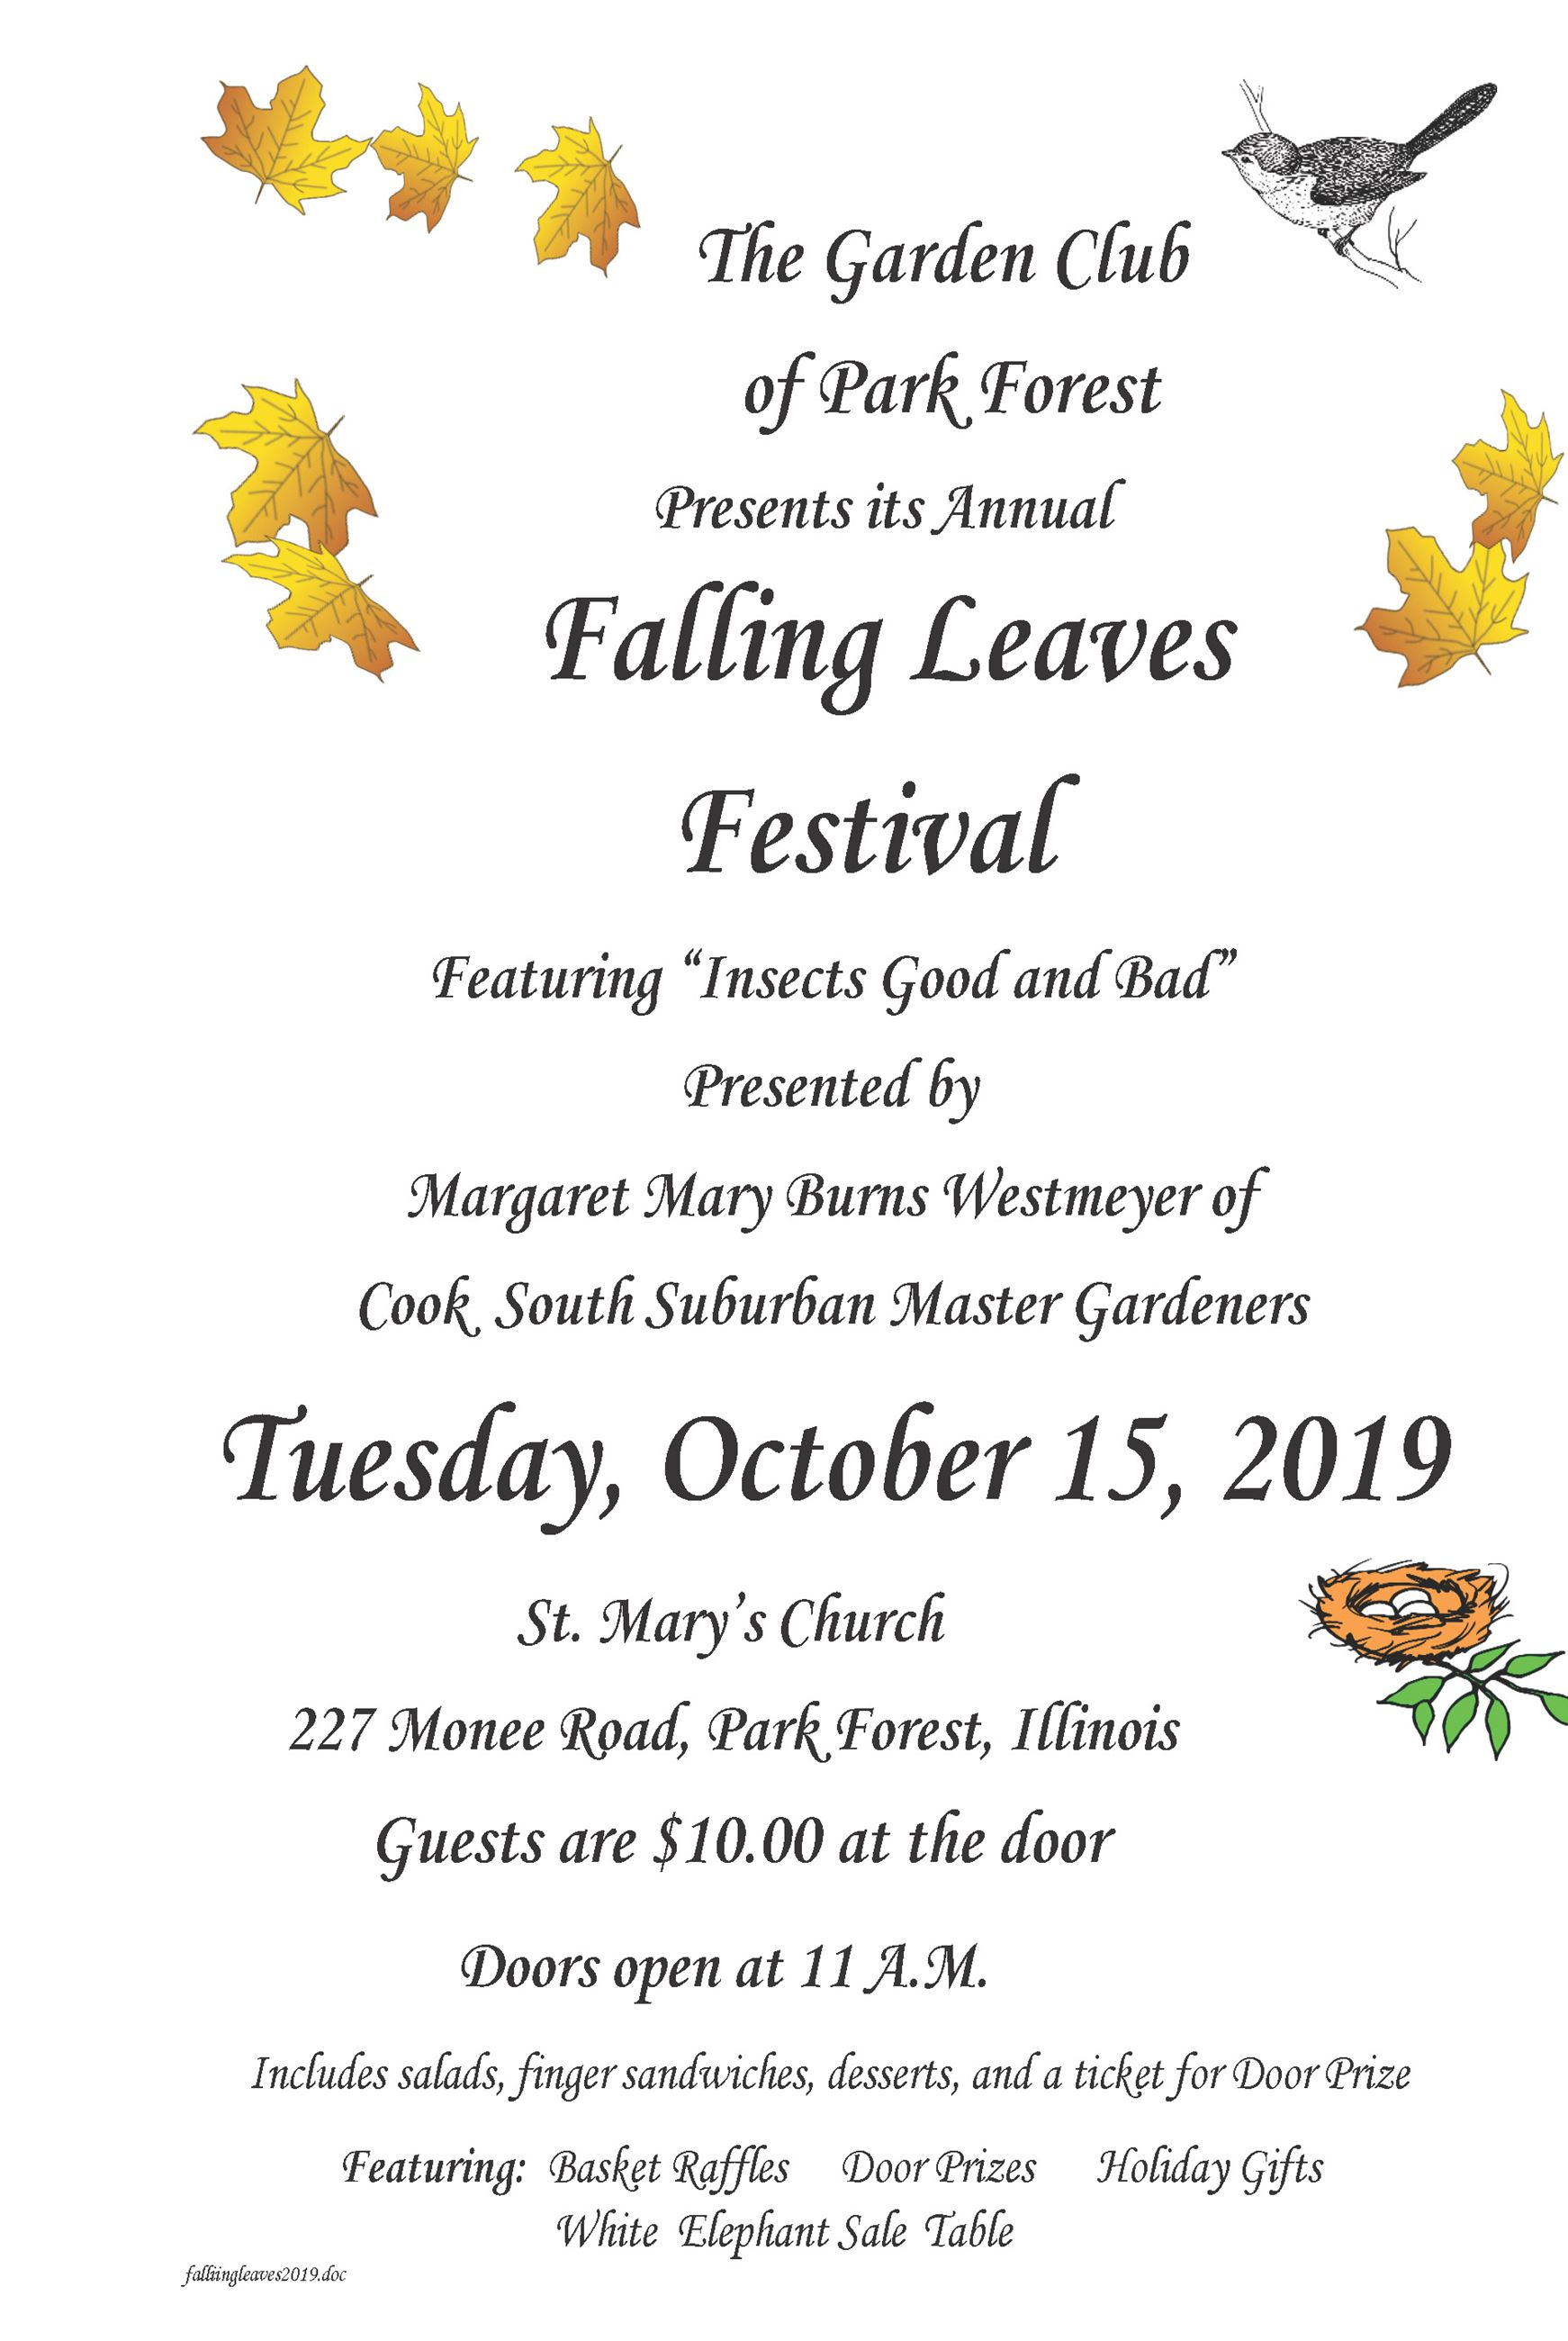 Flyer - Park Forest Garden Club - Falling Leaves Event 2019